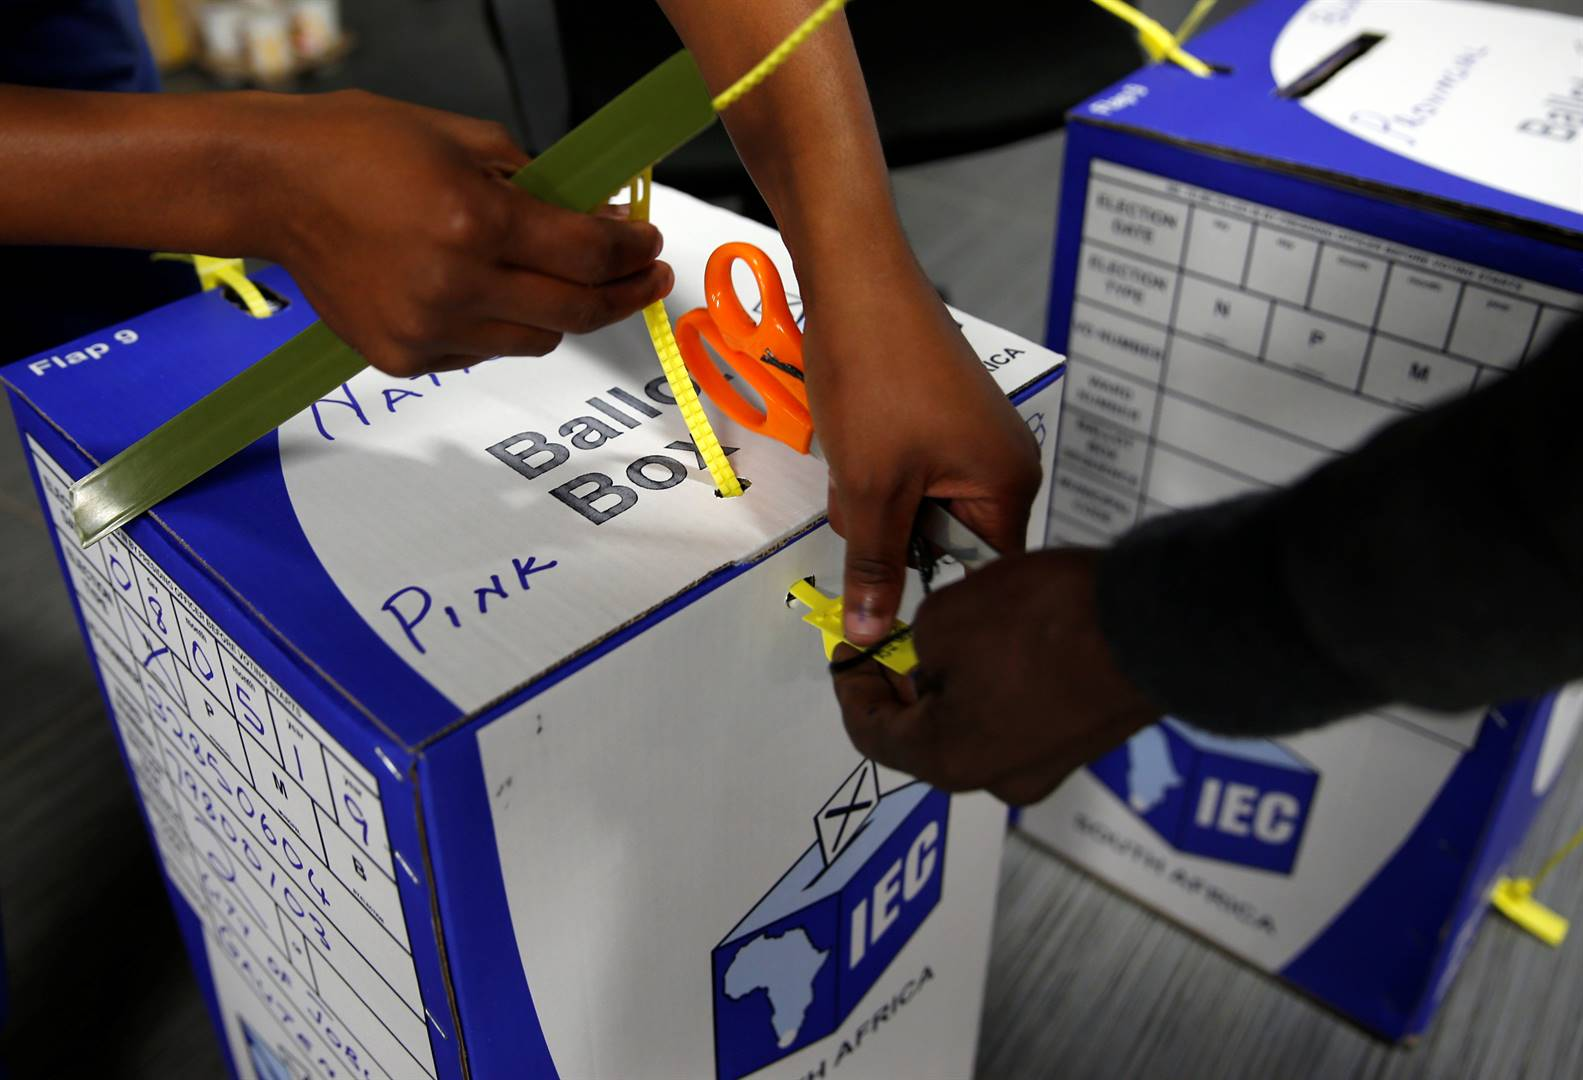 Election officials seal ballot boxes at the end of voting in Johannesburg. Picture: Philimon Bulawayo/Reuters